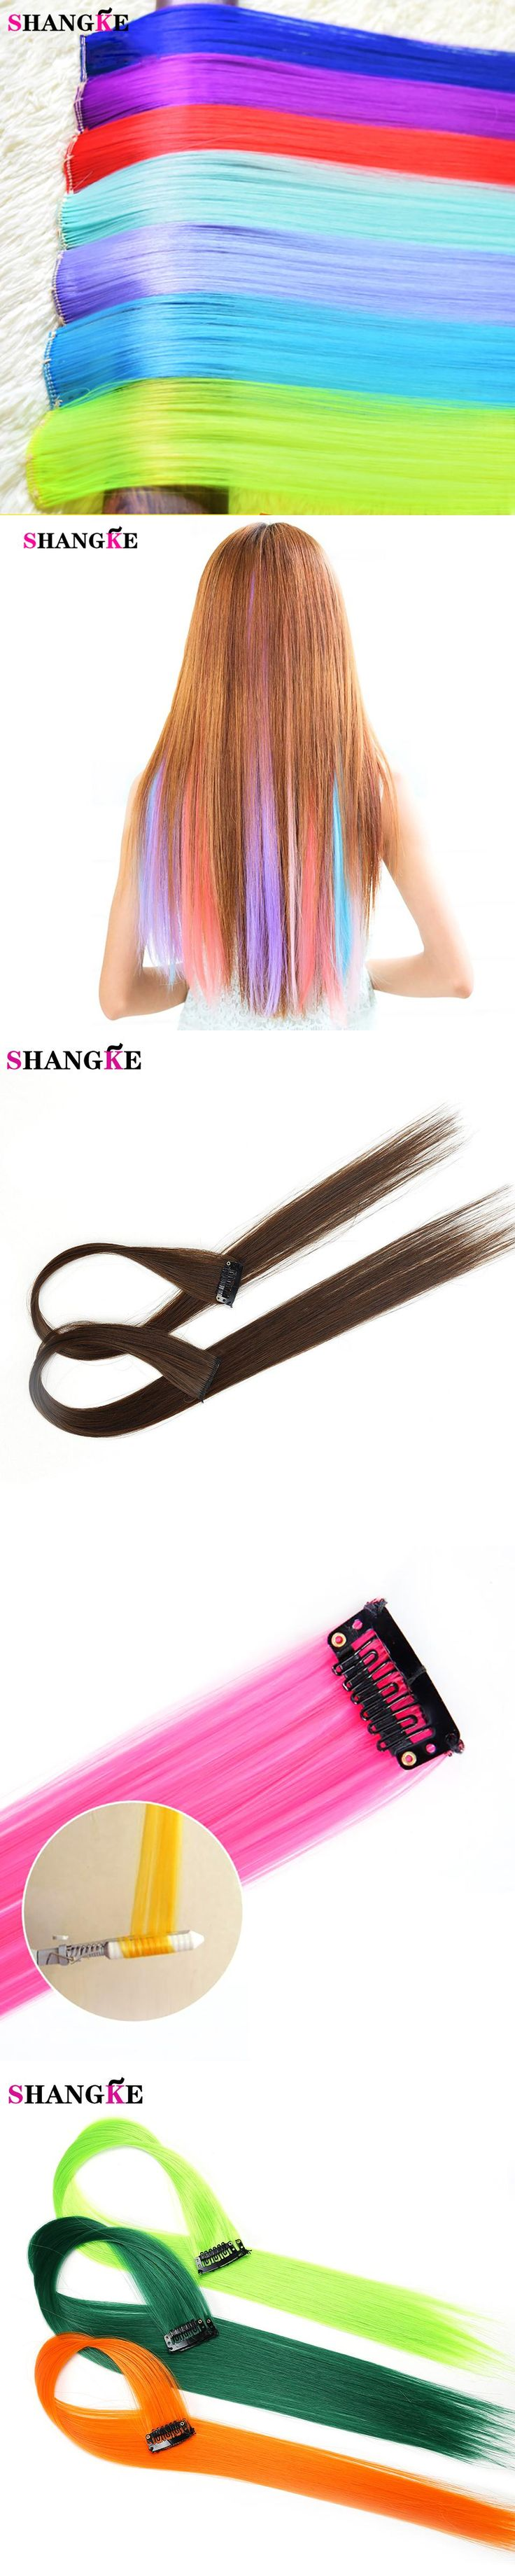 SHANGKE highlighted color Synthetic hair Extension Clip-in One Piece Long 50 CM Straight hairpiece for cheerleading squads